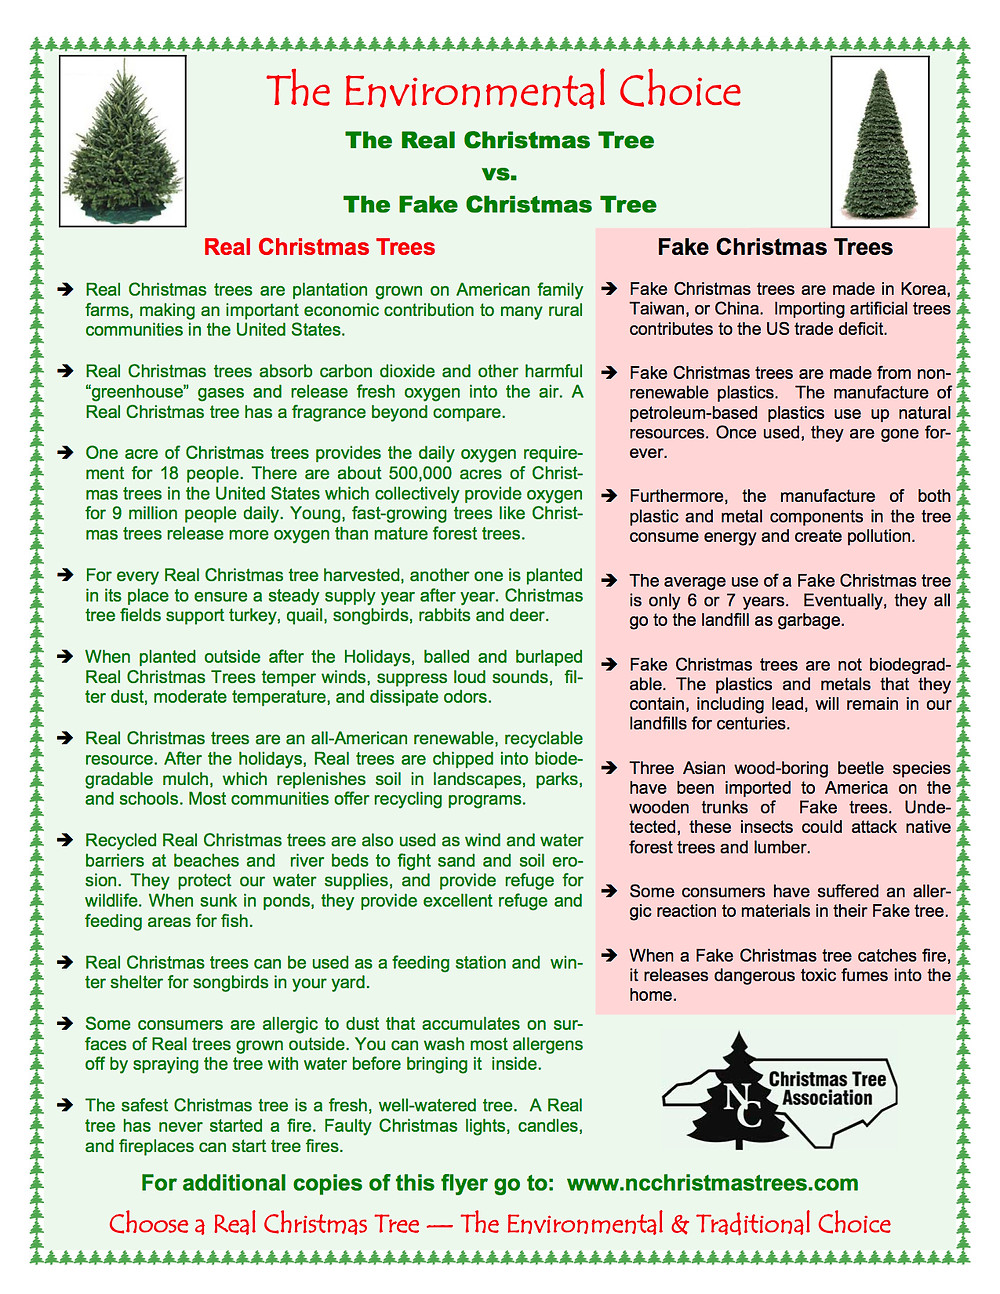 Environmental choice comparison of the pros and cons of using Real vs fake Christmas trees